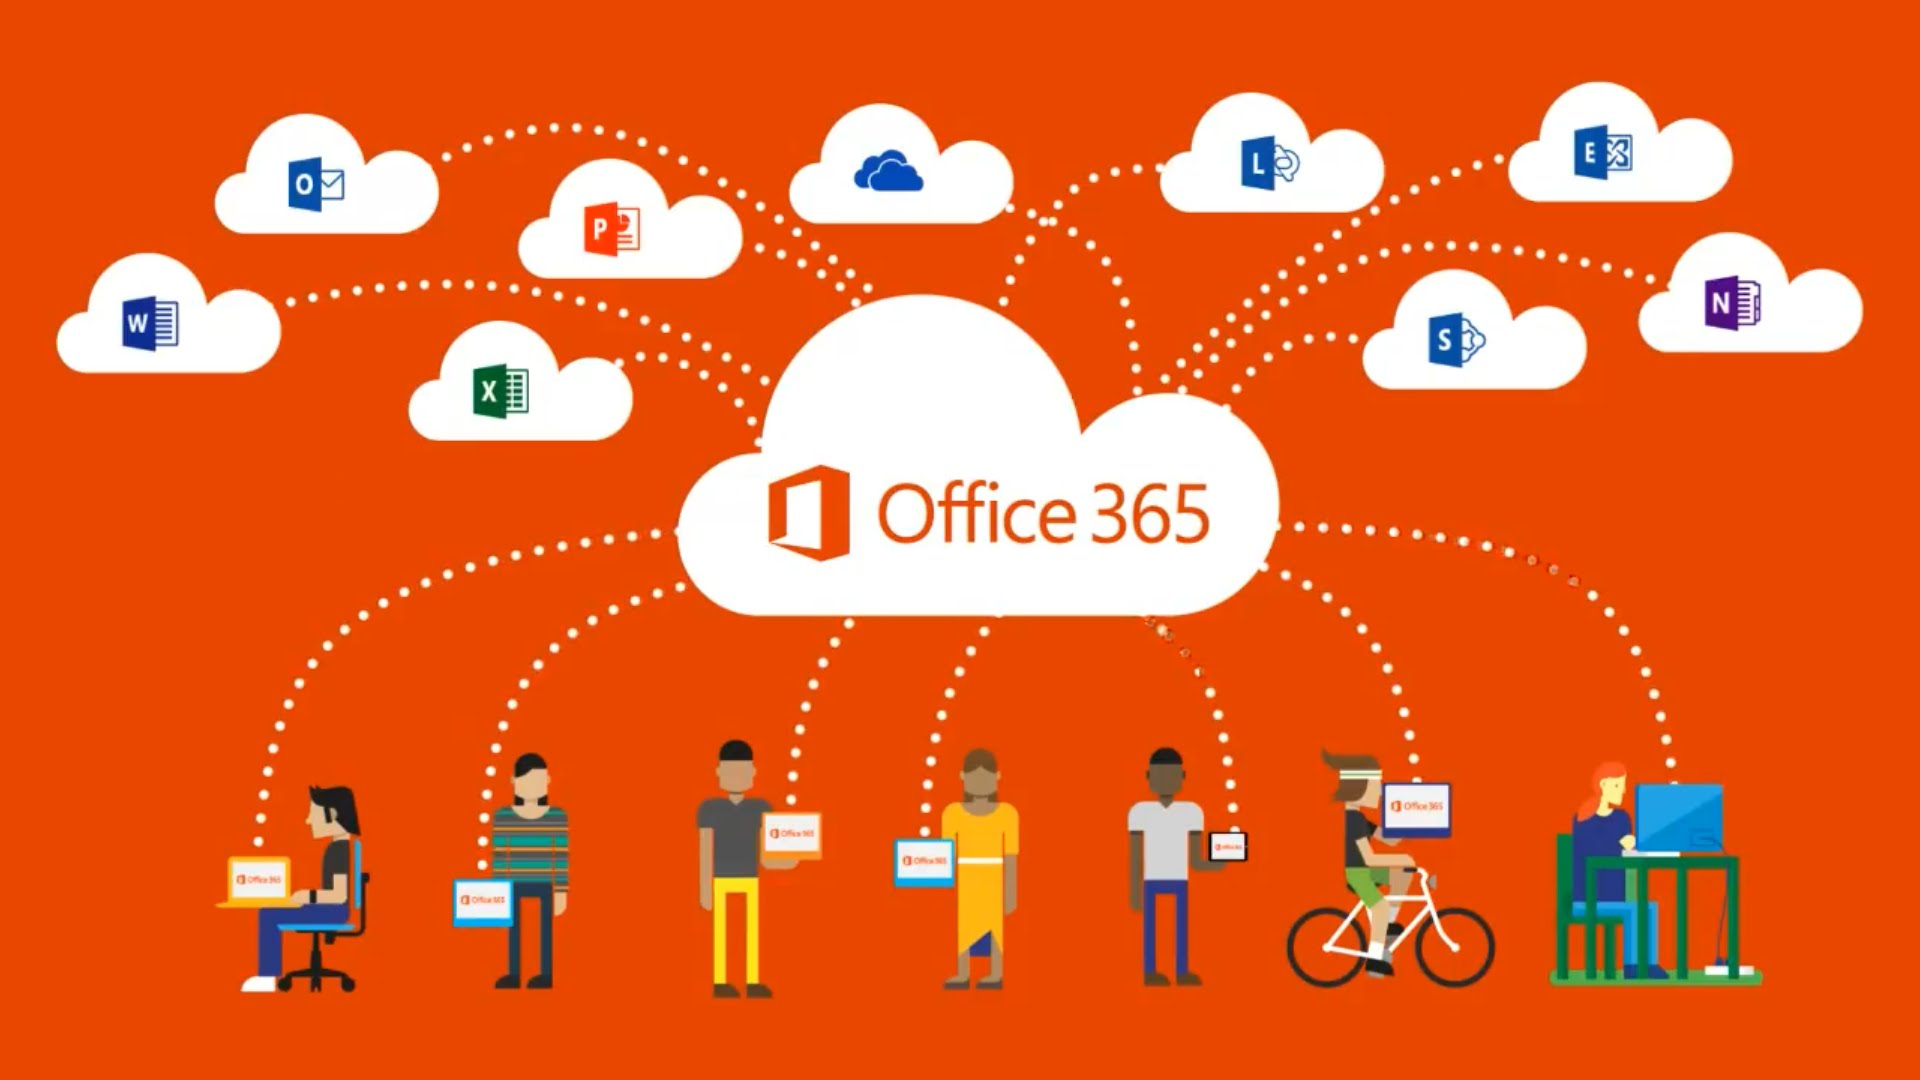 5 ways Office 365 makes collaboration easy - Featured Image